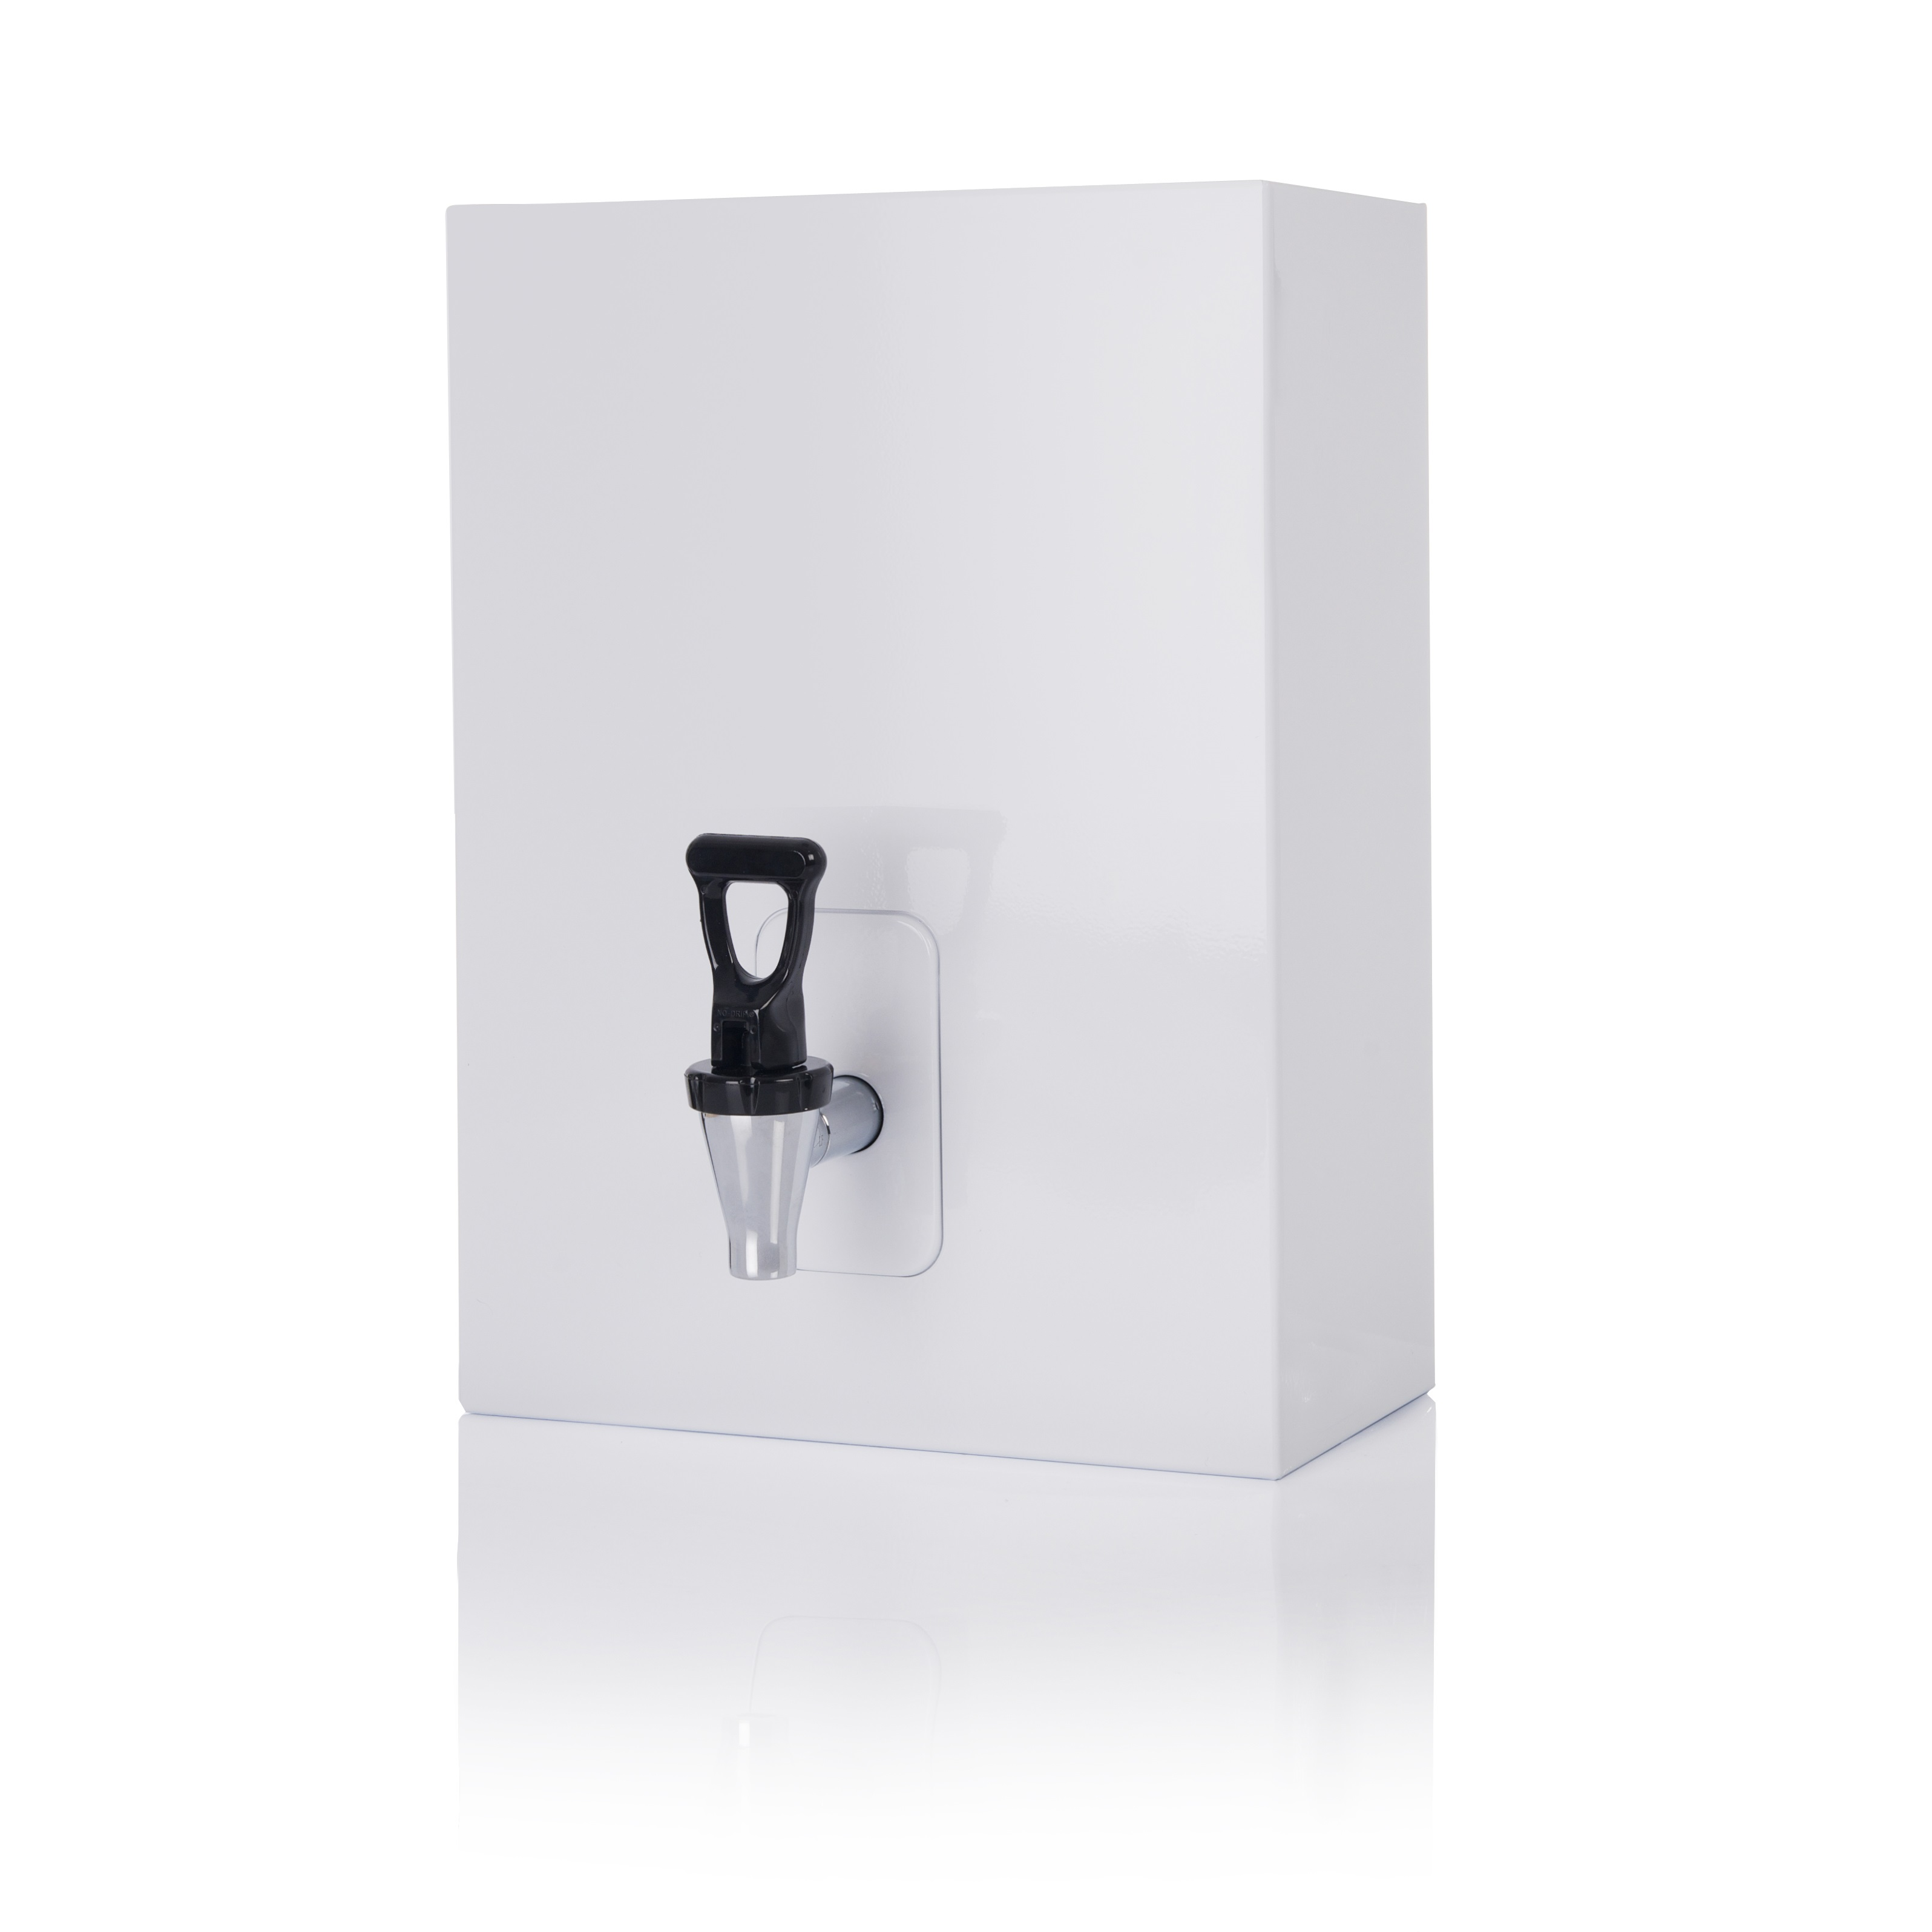 Hyco Microboil 3 Litre 2.4kW Standard Instant Water Boiling Water Unit MBS3